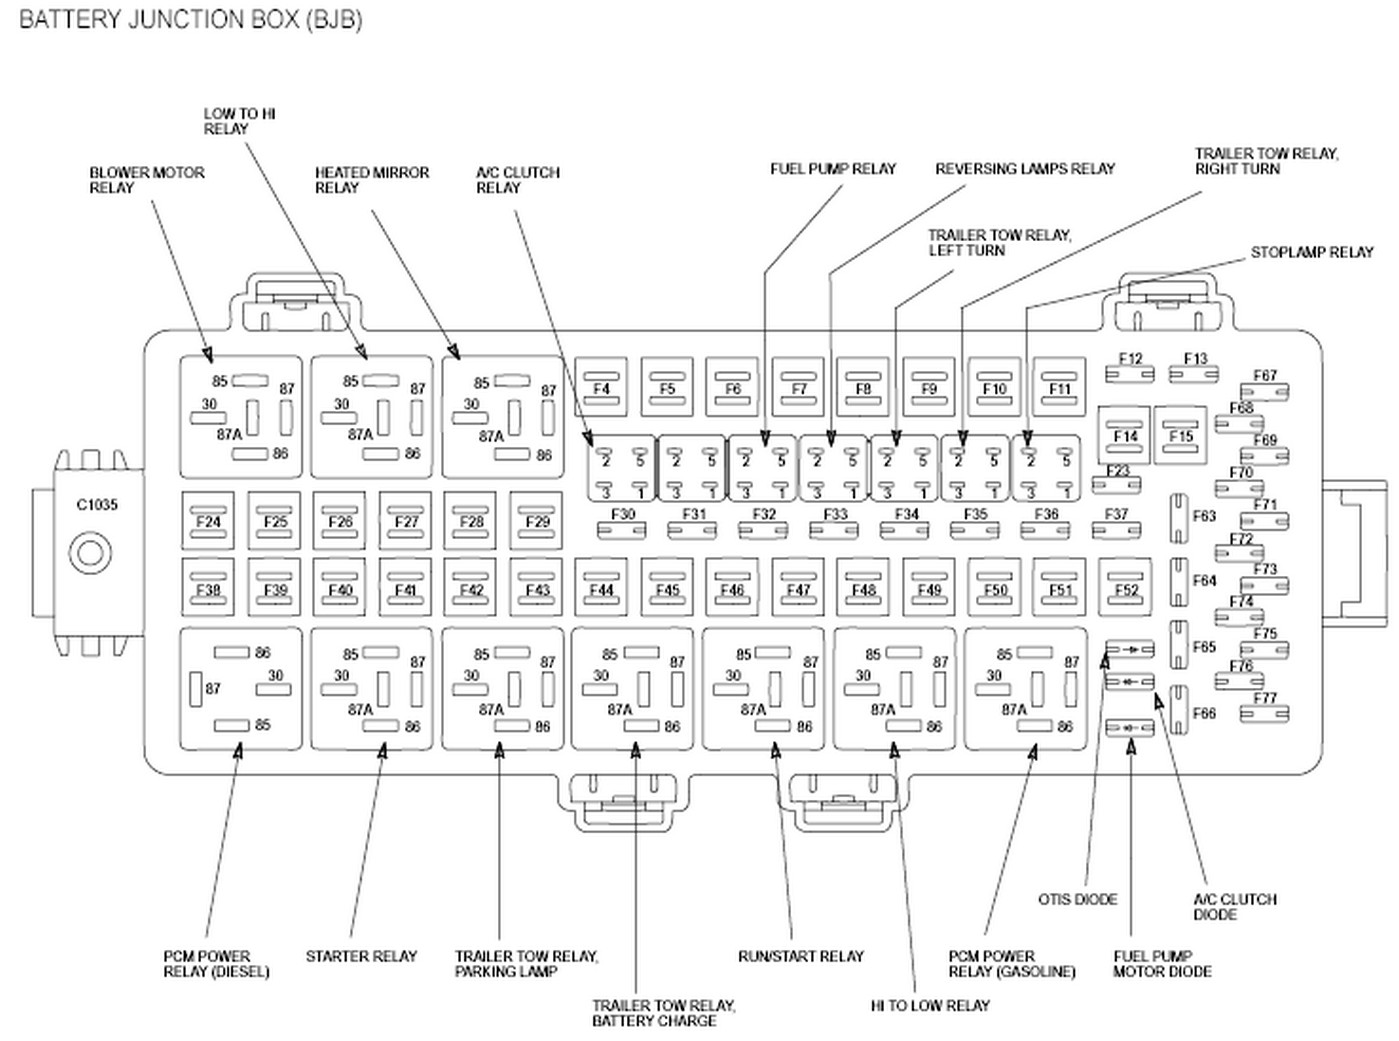 2011 ford f250 fuse box diagram Zoinyhu 2012 f250 fuse box location 2009 ford fusion fuse box diagram fuse box diagram for a 2005 ford expedition at edmiracle.co